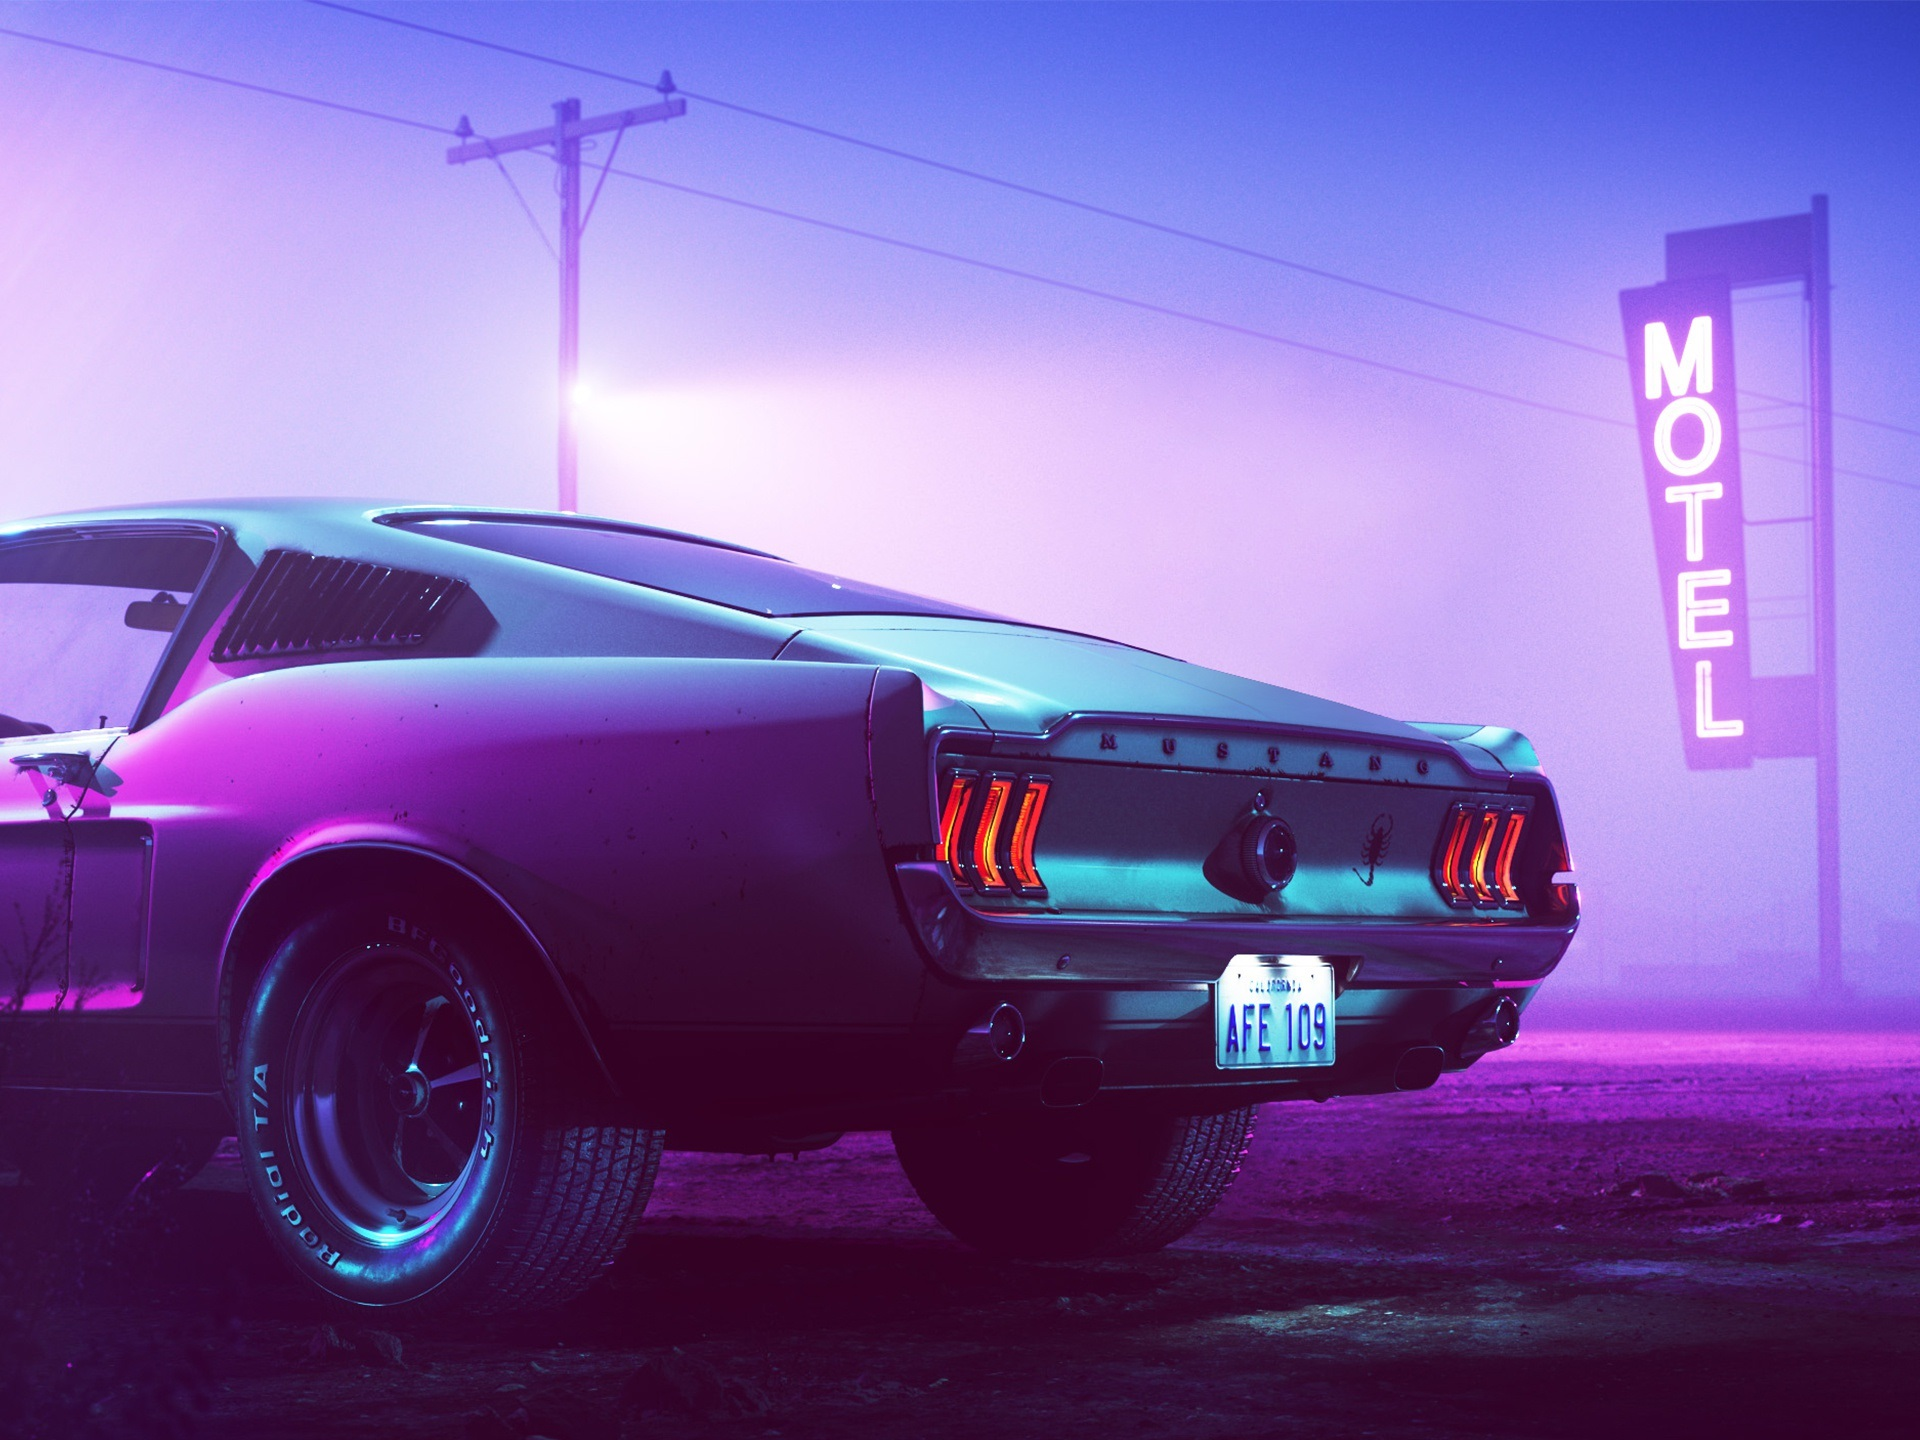 Wallpaper 1969 Ford Mustang Car Back View Motel Neon